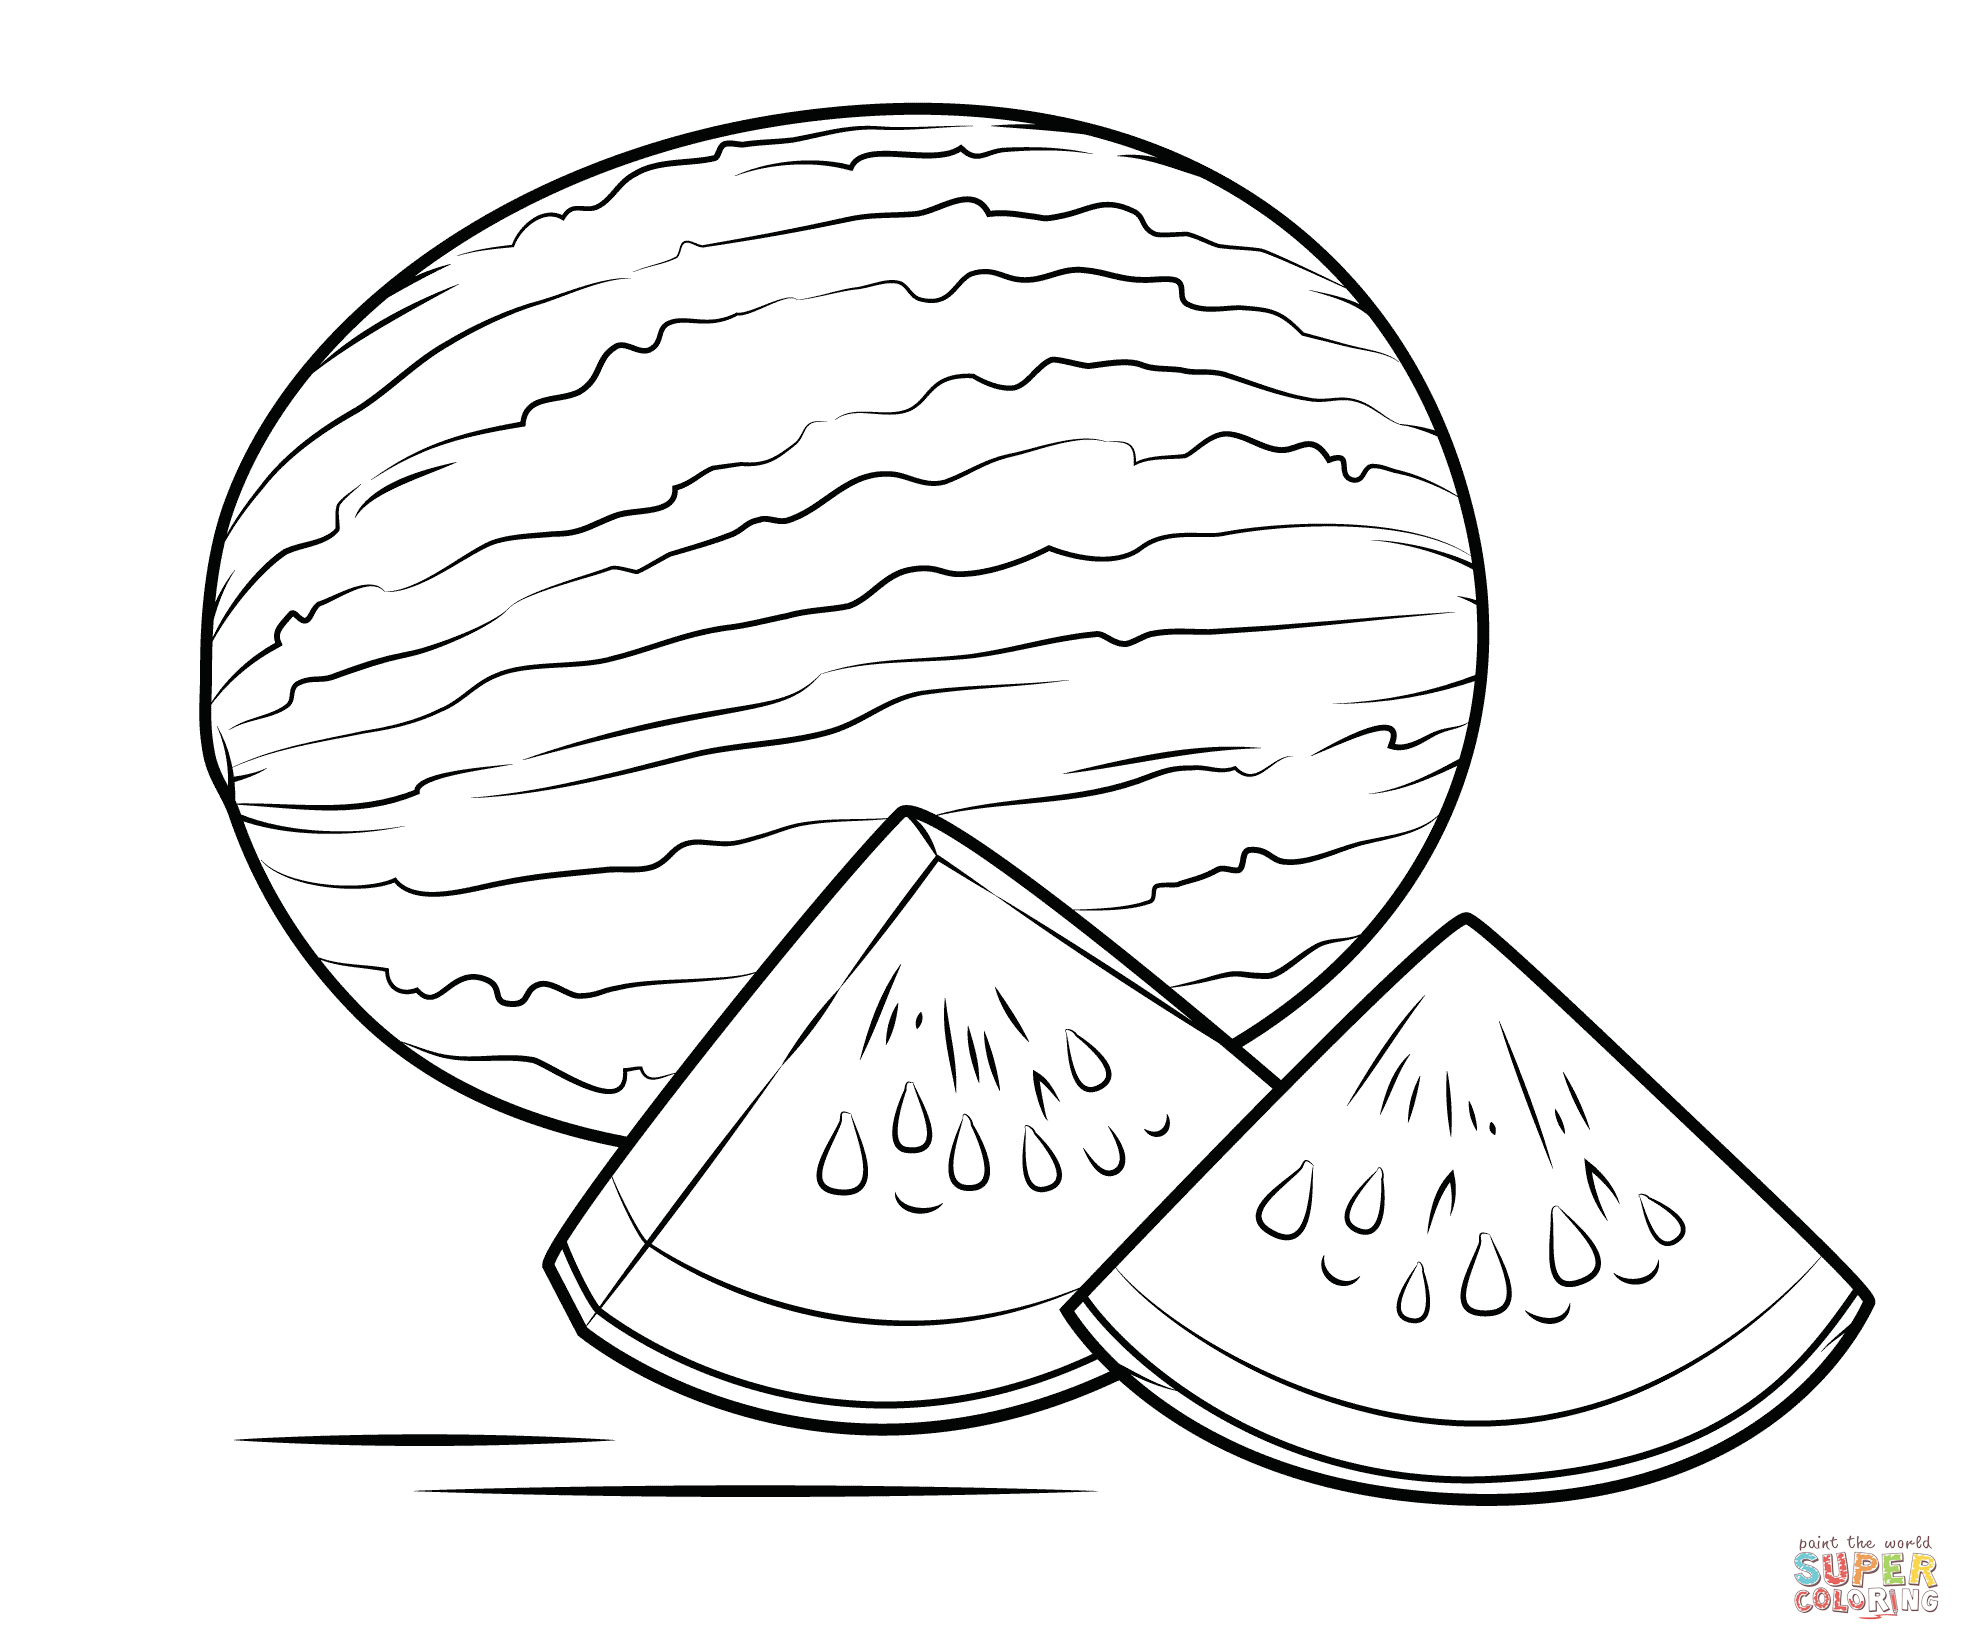 Best Watermelon Coloring Page Designs School Crafts Pinterest